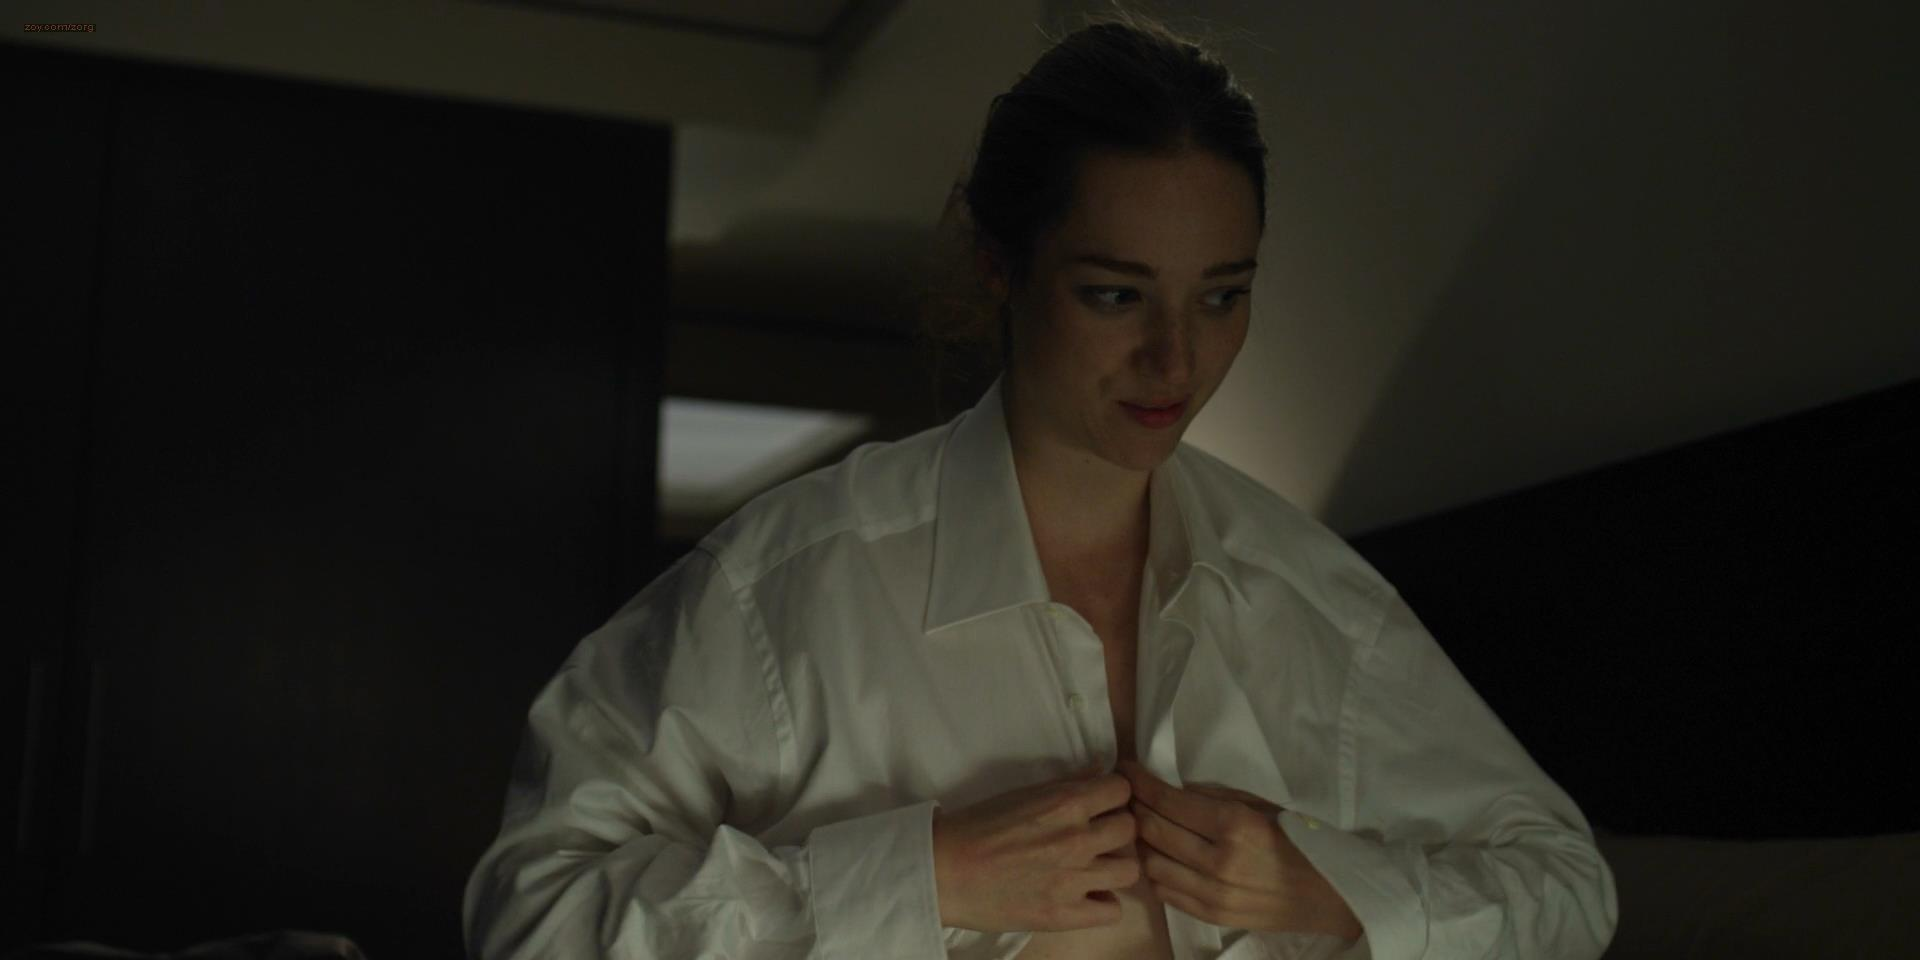 Kristen connolly house of cards